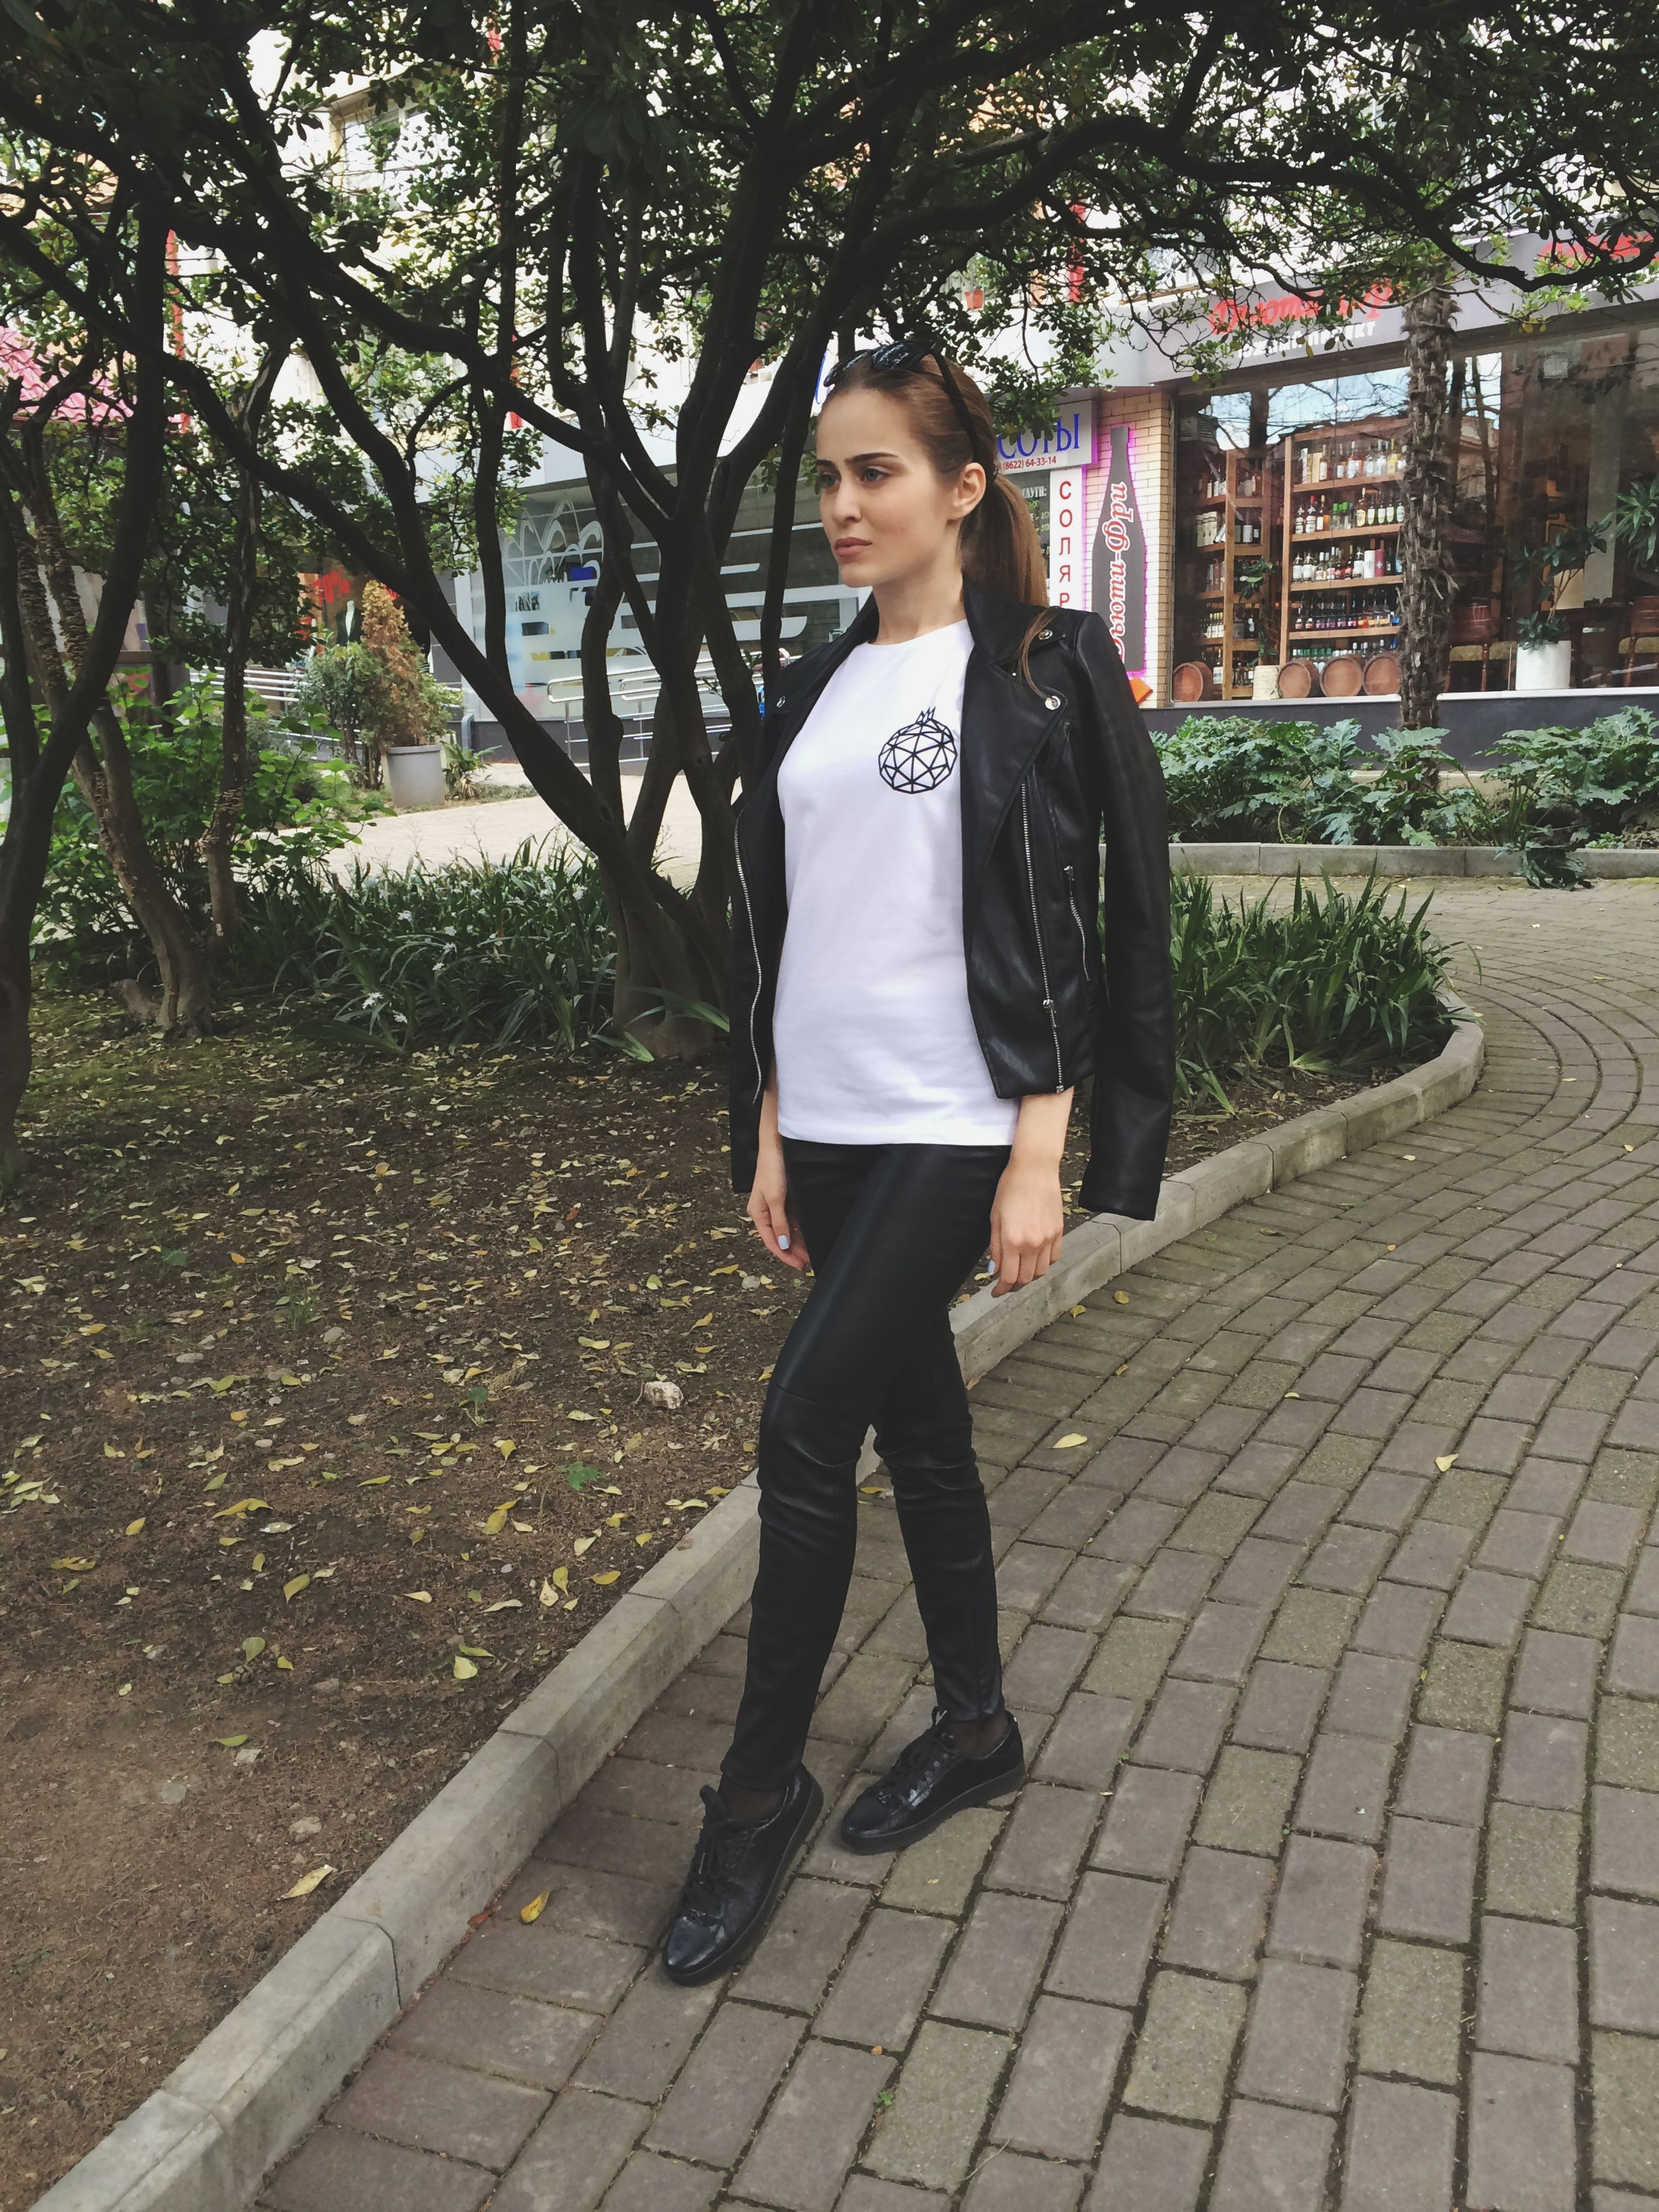 young adult, person, looking at camera, portrait, casual clothing, lifestyles, full length, front view, young women, leisure activity, standing, smiling, happiness, street, fashion, tree, outdoors